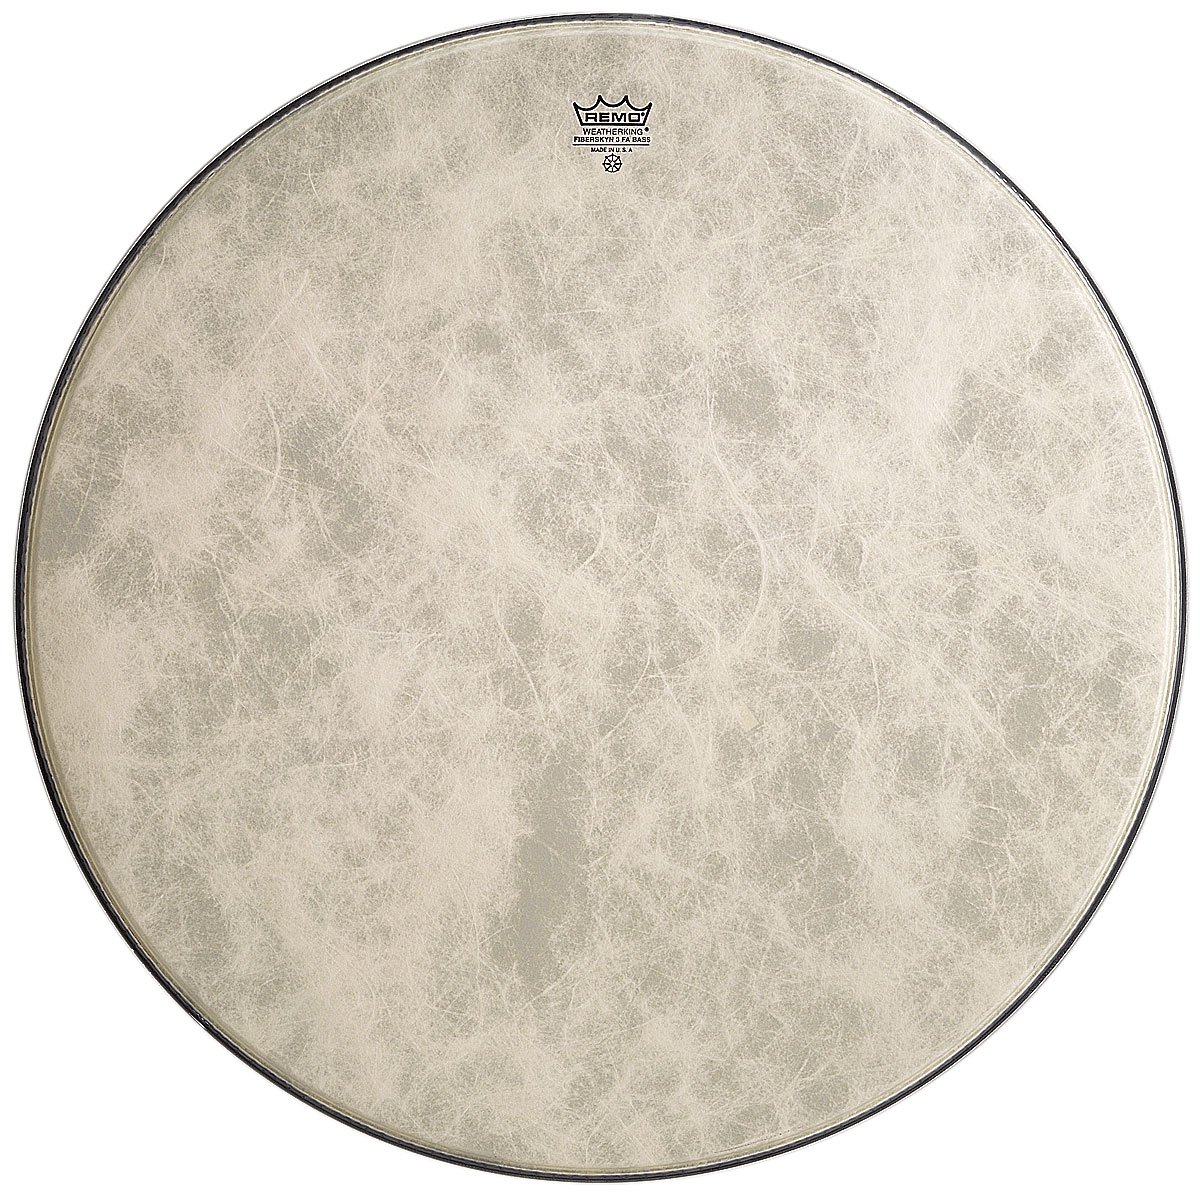 "Remo 24"" Ambassador Fiberskyn Bass Drum Head"